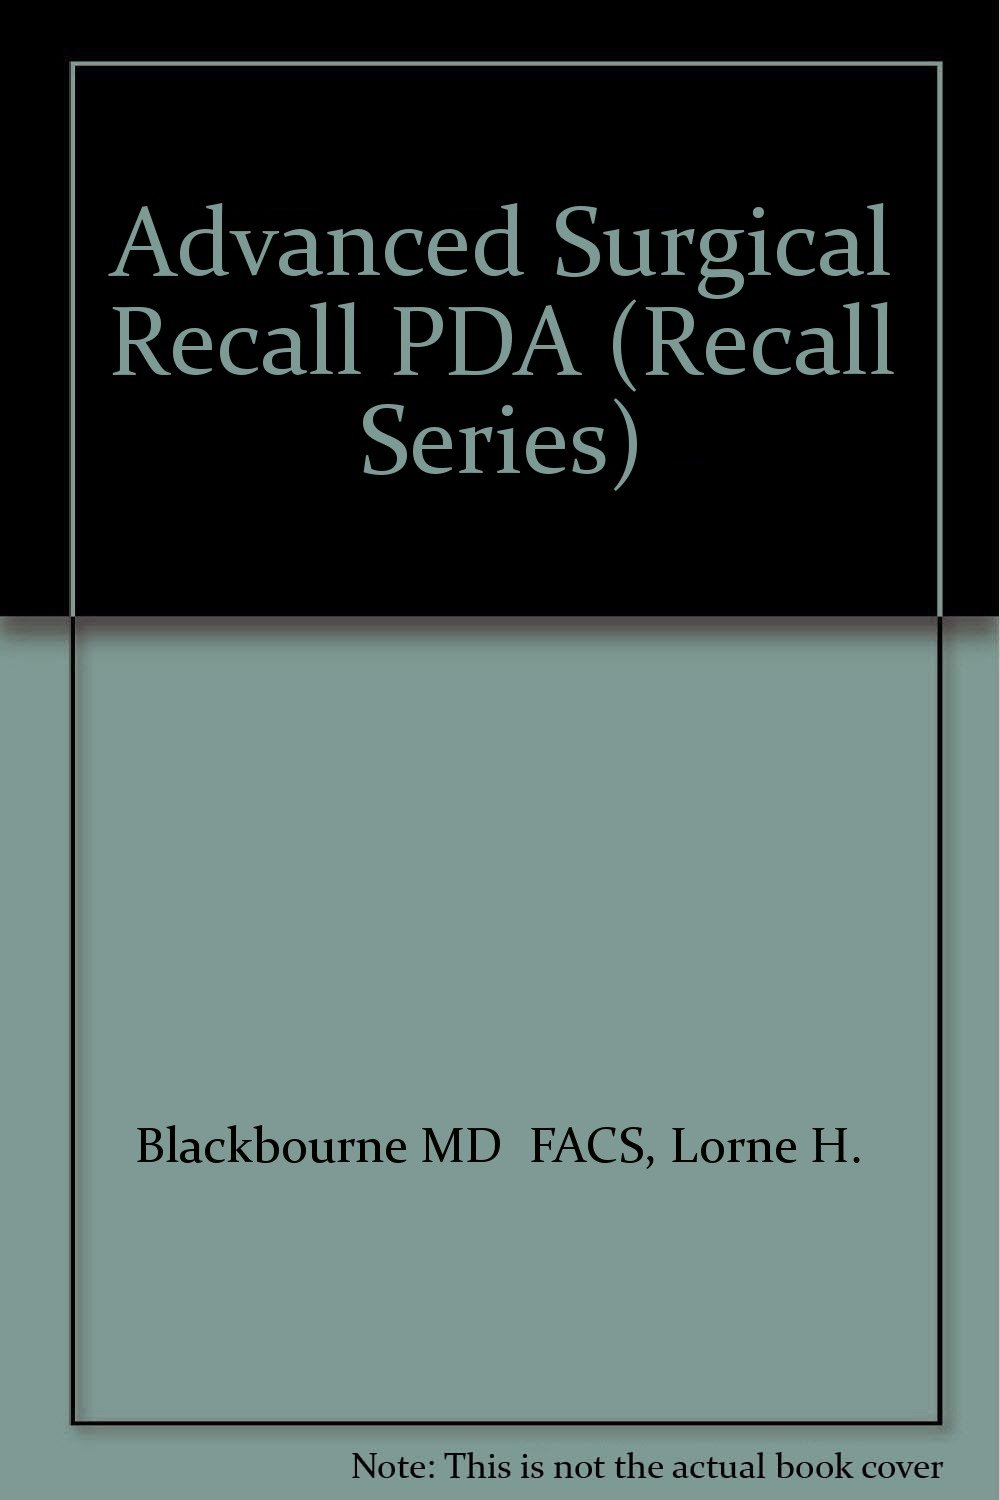 Buy Advanced Surg Recall PDA-Online Book Online at Low Prices in India |  Advanced Surg Recall PDA-Online Reviews & Ratings - Amazon.in